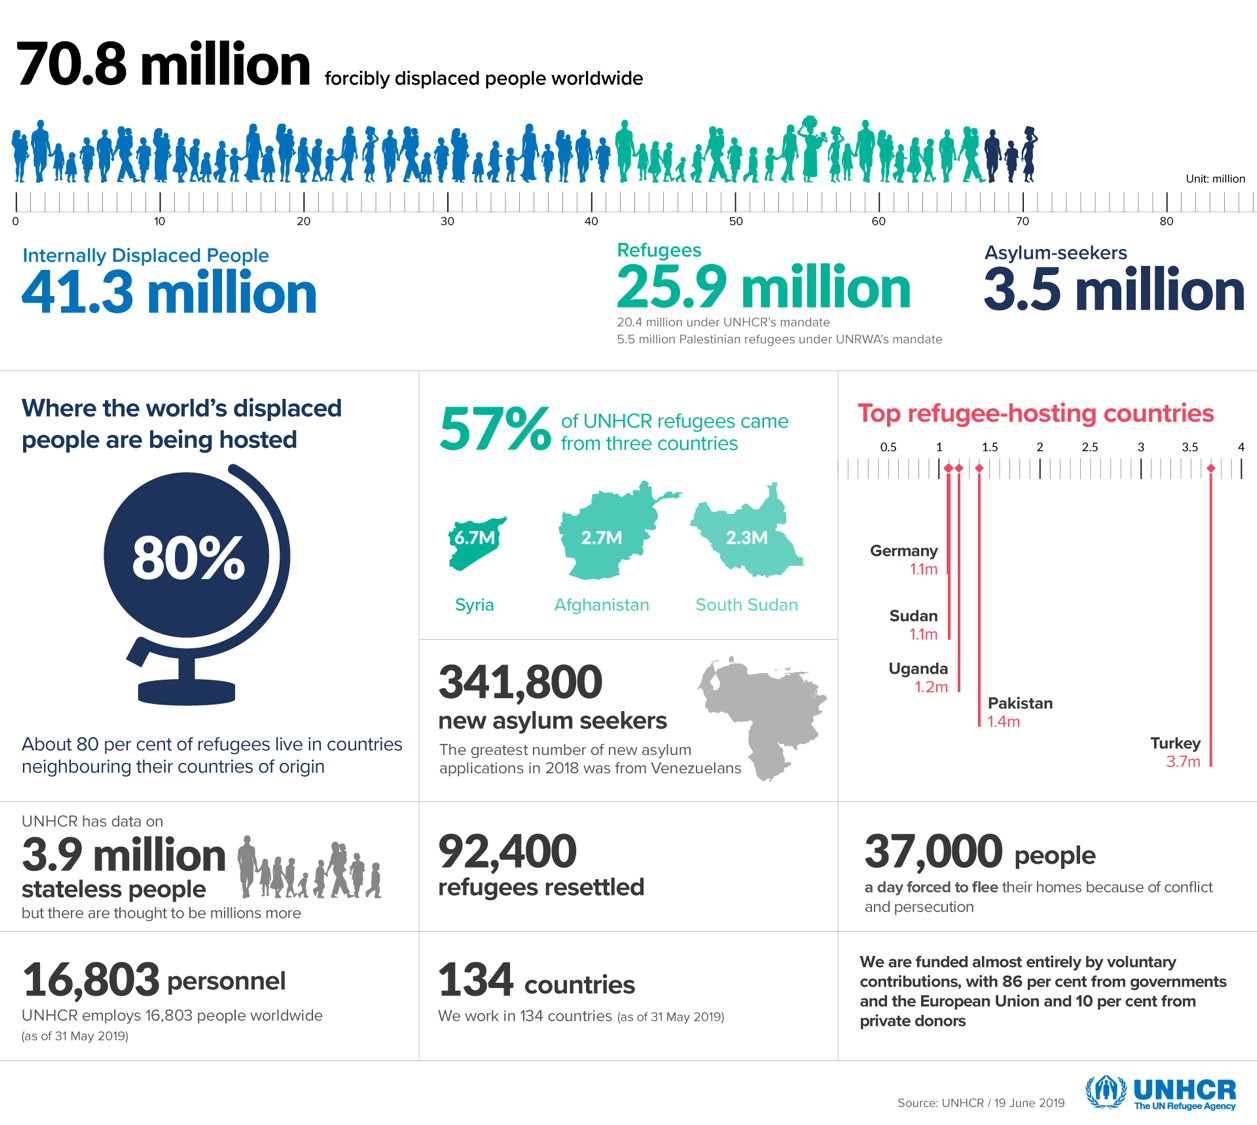 The Scale of the Problem is Unprecedented - Since the Second World War, the scale of displacement has never been so large. With over 70 million people around the world forcibly displaced, 25.9 million of whom qualify as refugees, the international community needs to come together for a sustainable solution.